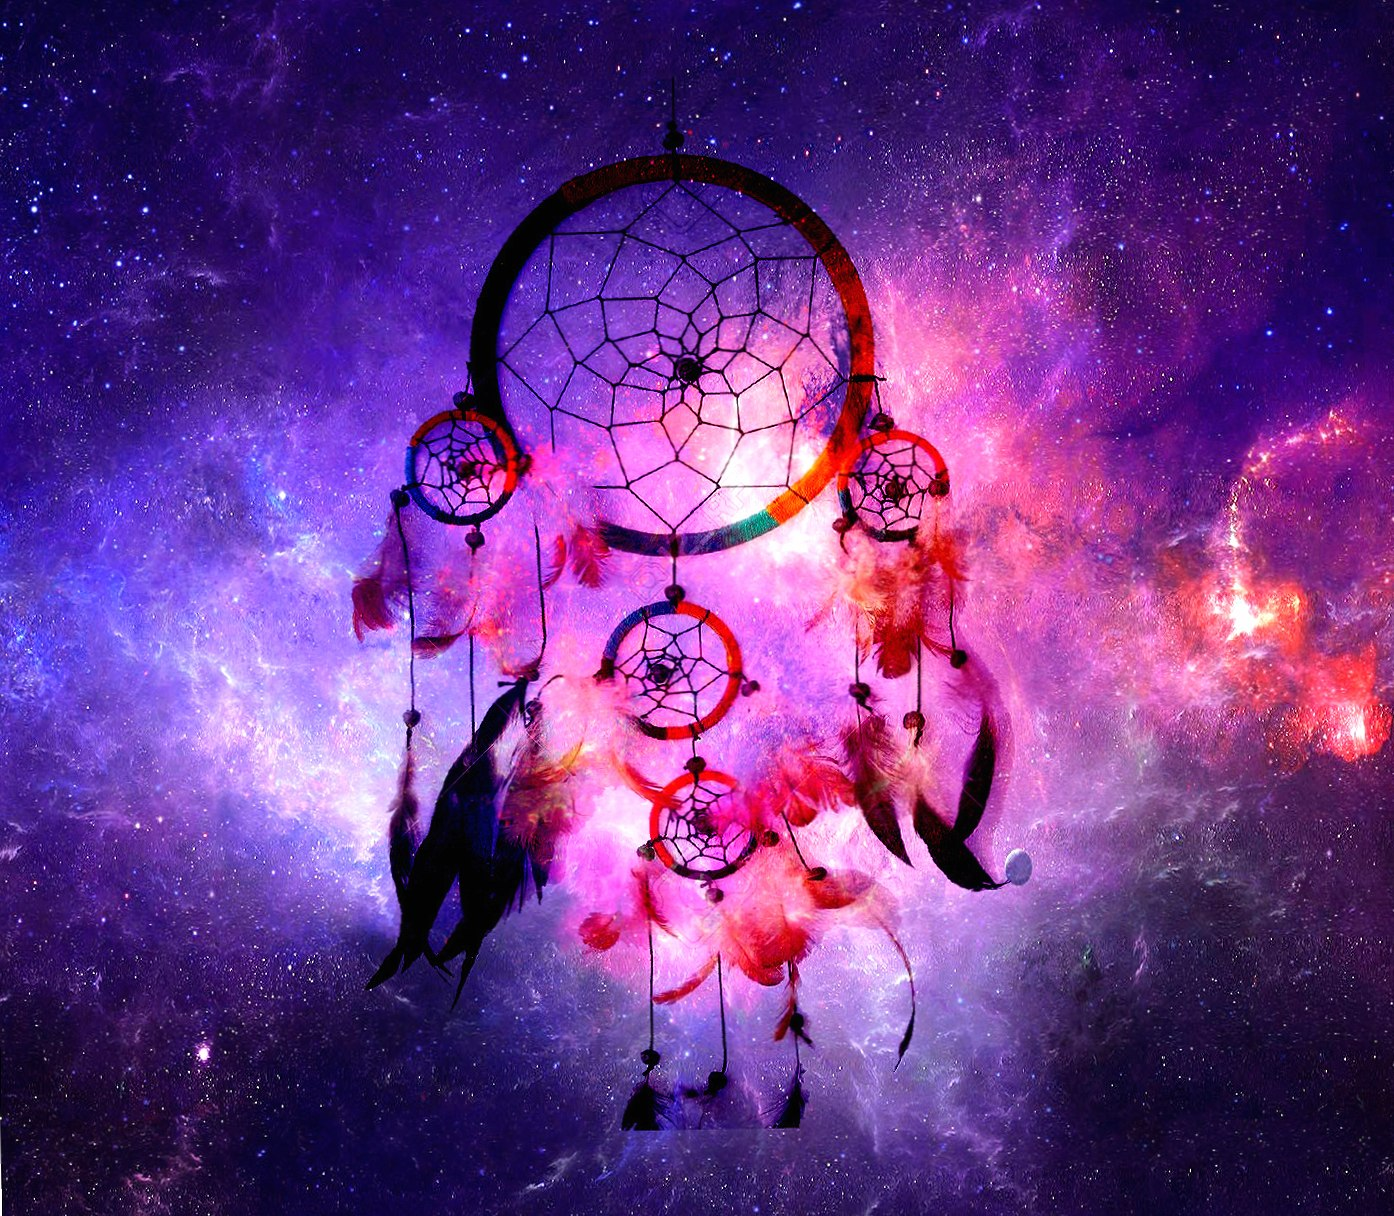 Dreamcatcher space wallpaper hd download dreamcatcher space wallpapers hd quality voltagebd Choice Image